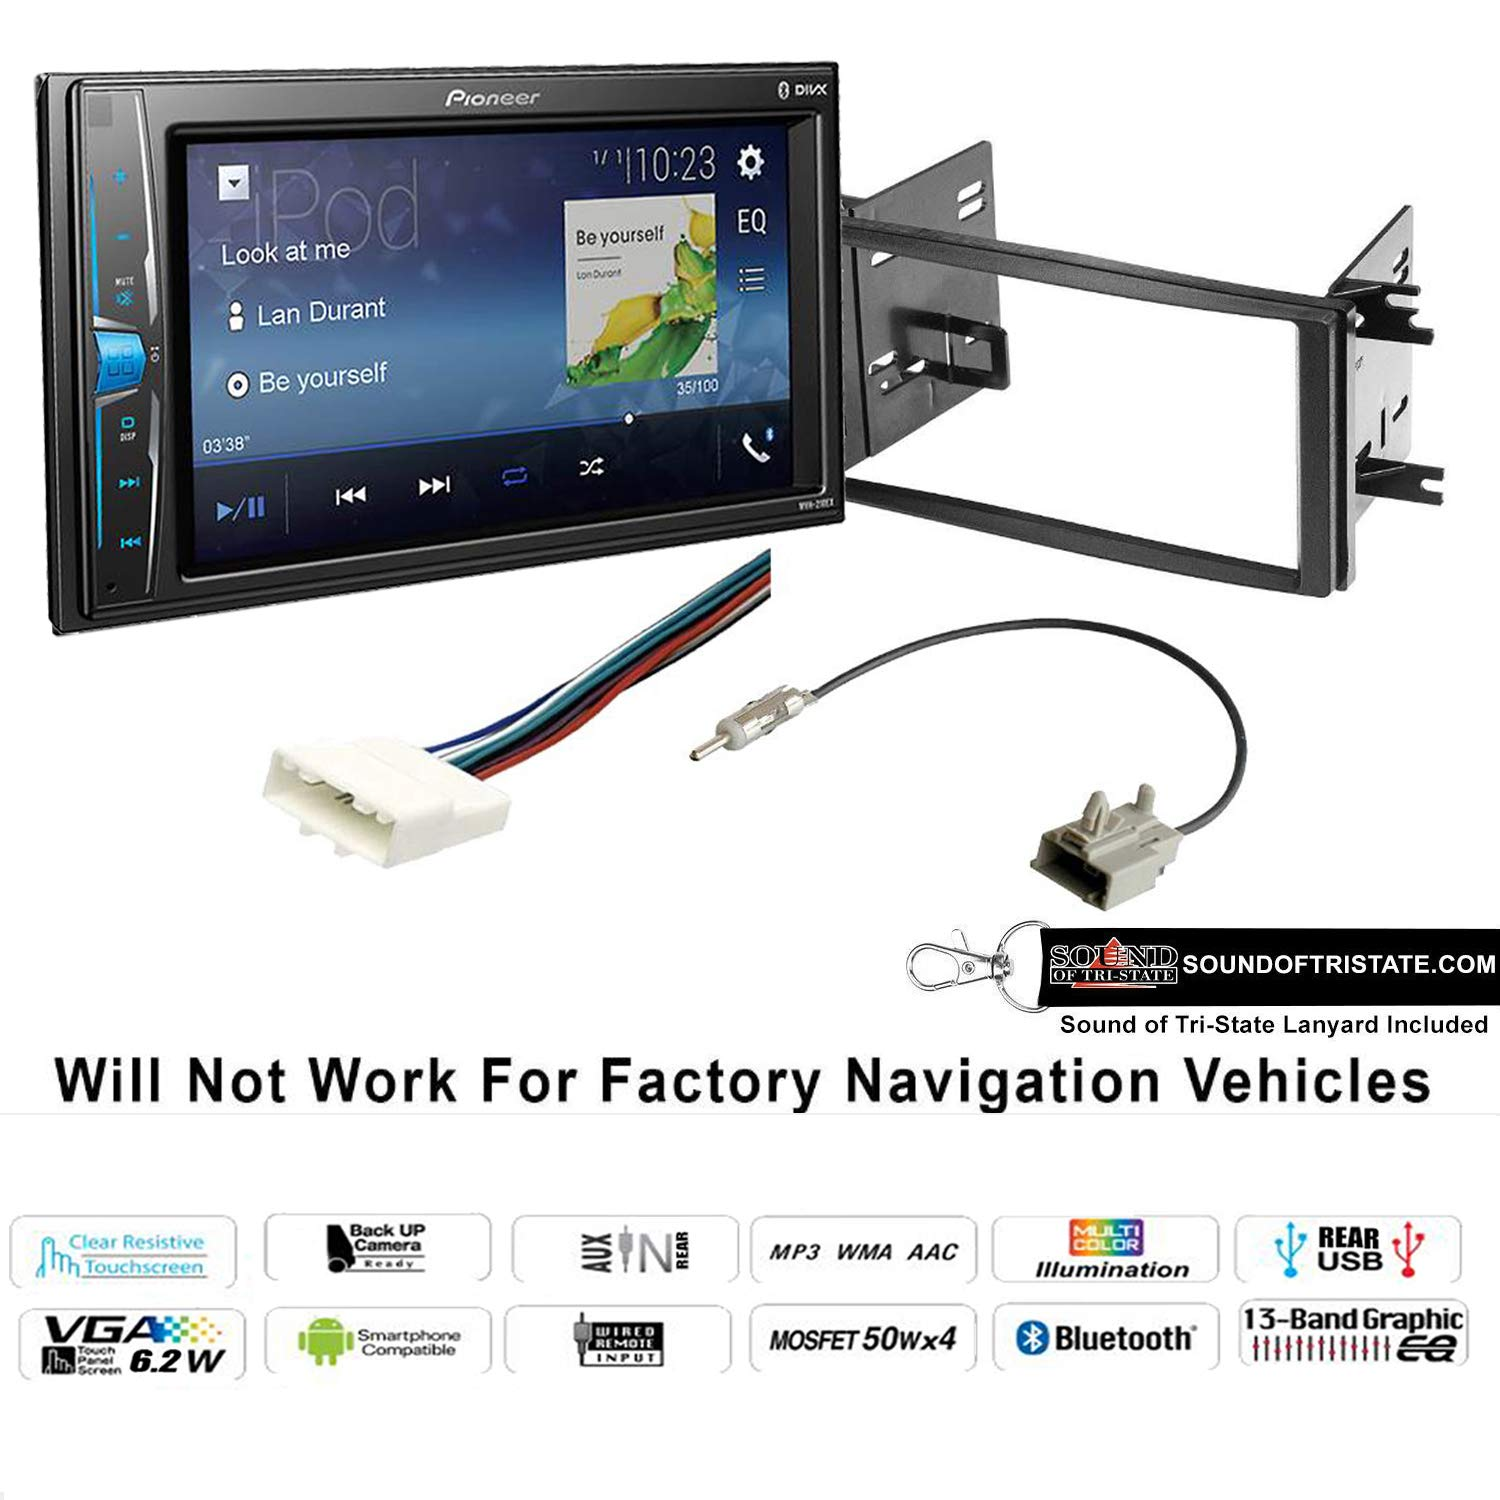 Pioneer MVH-210EX 6.2'' Double Din Digital Multimedia Receiver with Installation Kit fits 09-13 Subaru Forester, 08-14 Subaru Impreza with Sound of Tri-State Lanyard Bundle